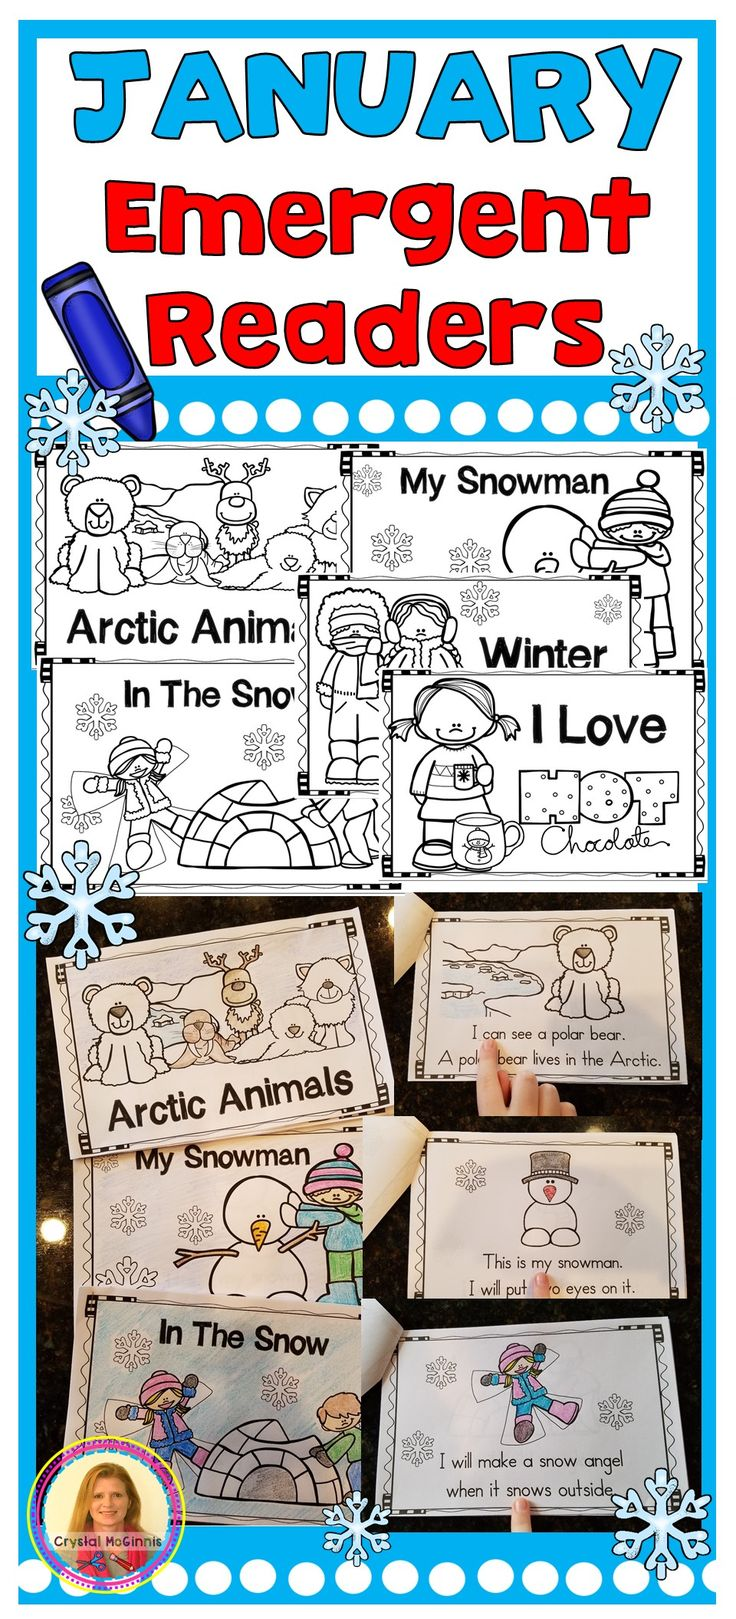 January Winter Emergent Readers (fill your book boxes) Arctic Animals, Winter, Snow, Snowman, Hot Chocolate